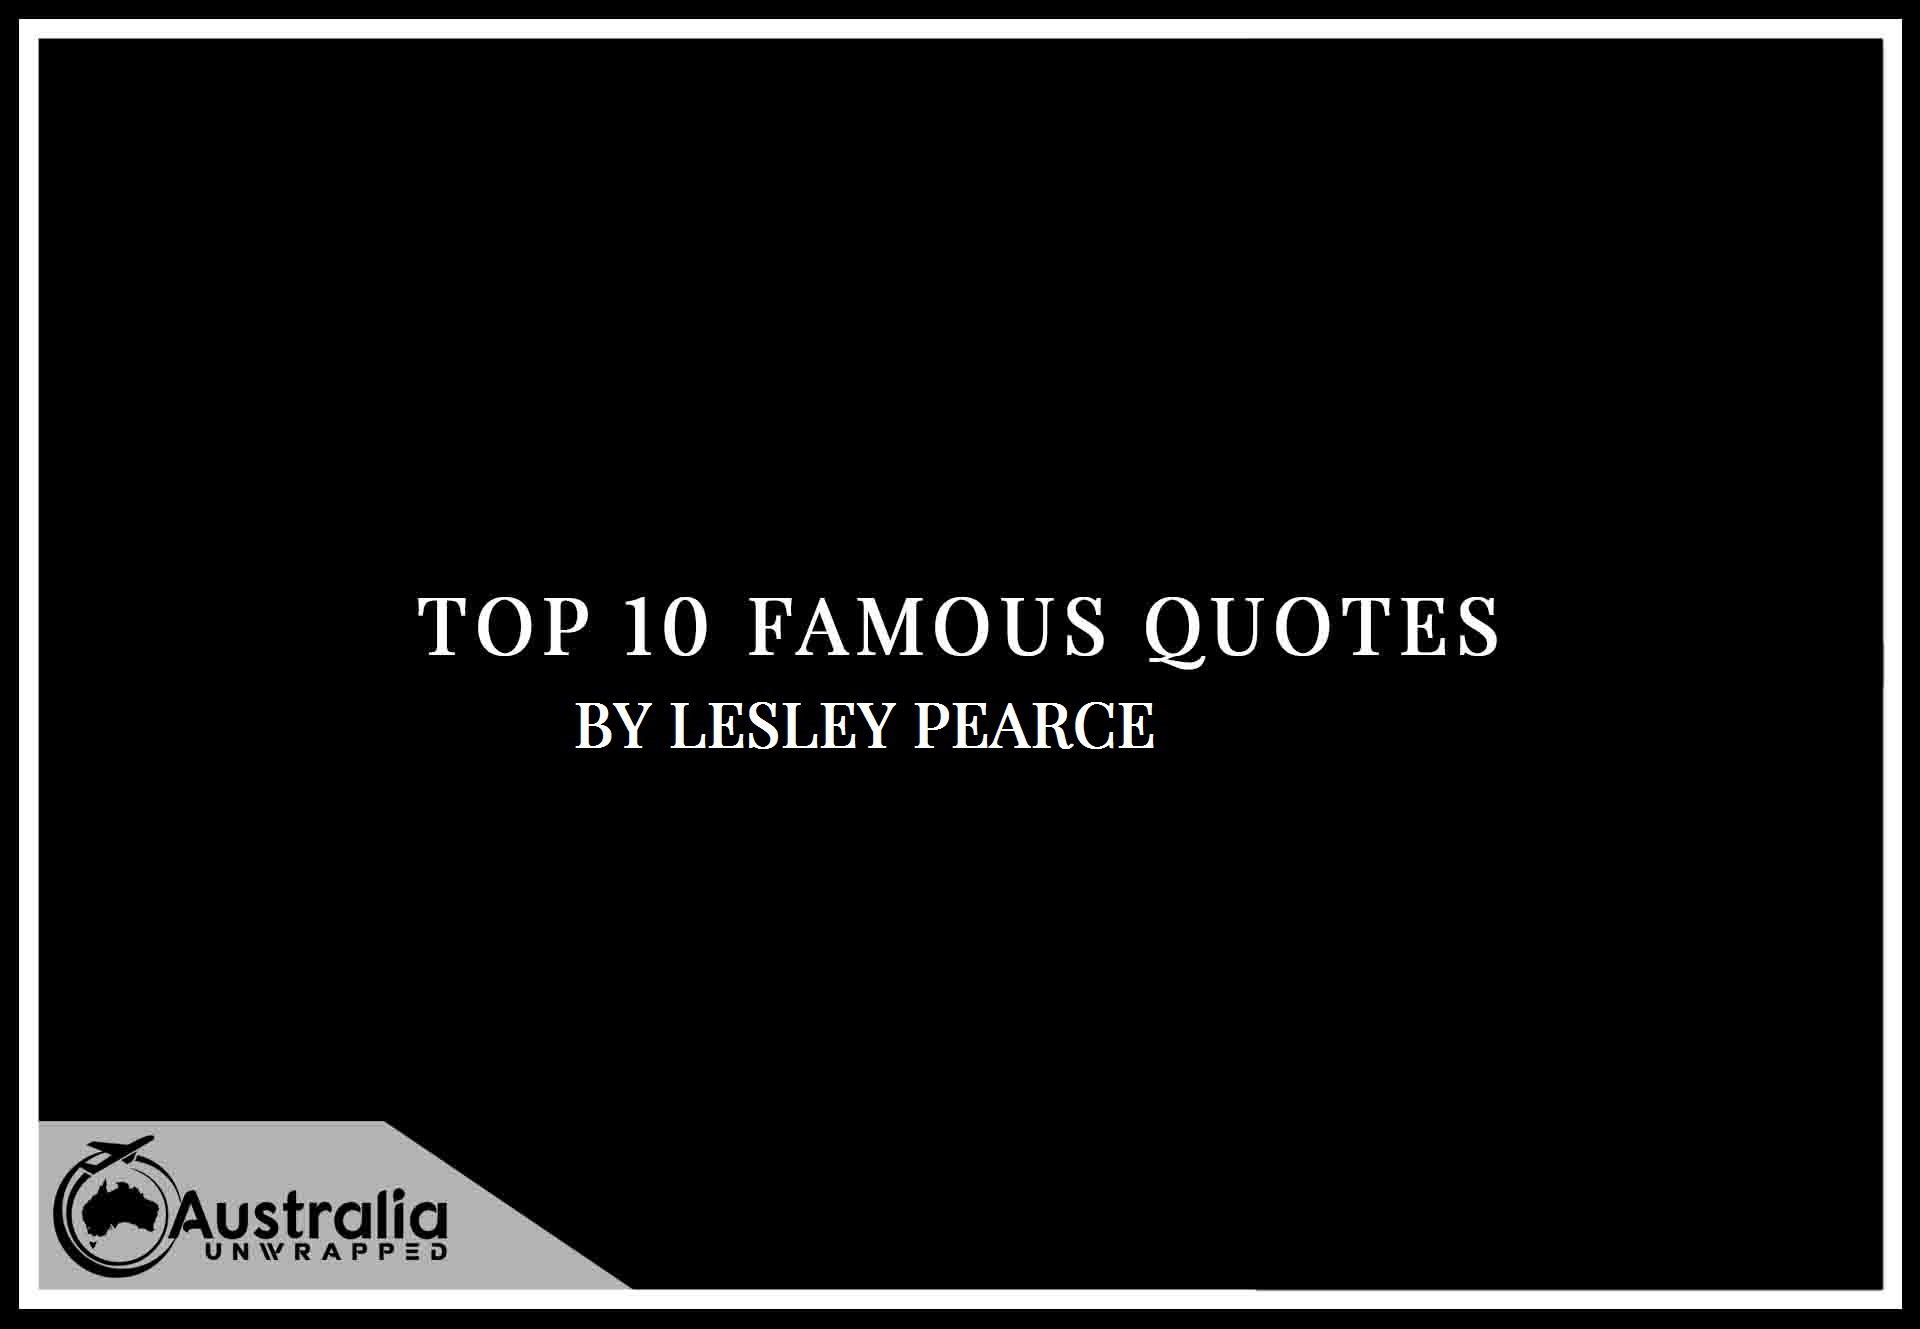 Lesley Pearse's Top 10 Popular and Famous Quotes